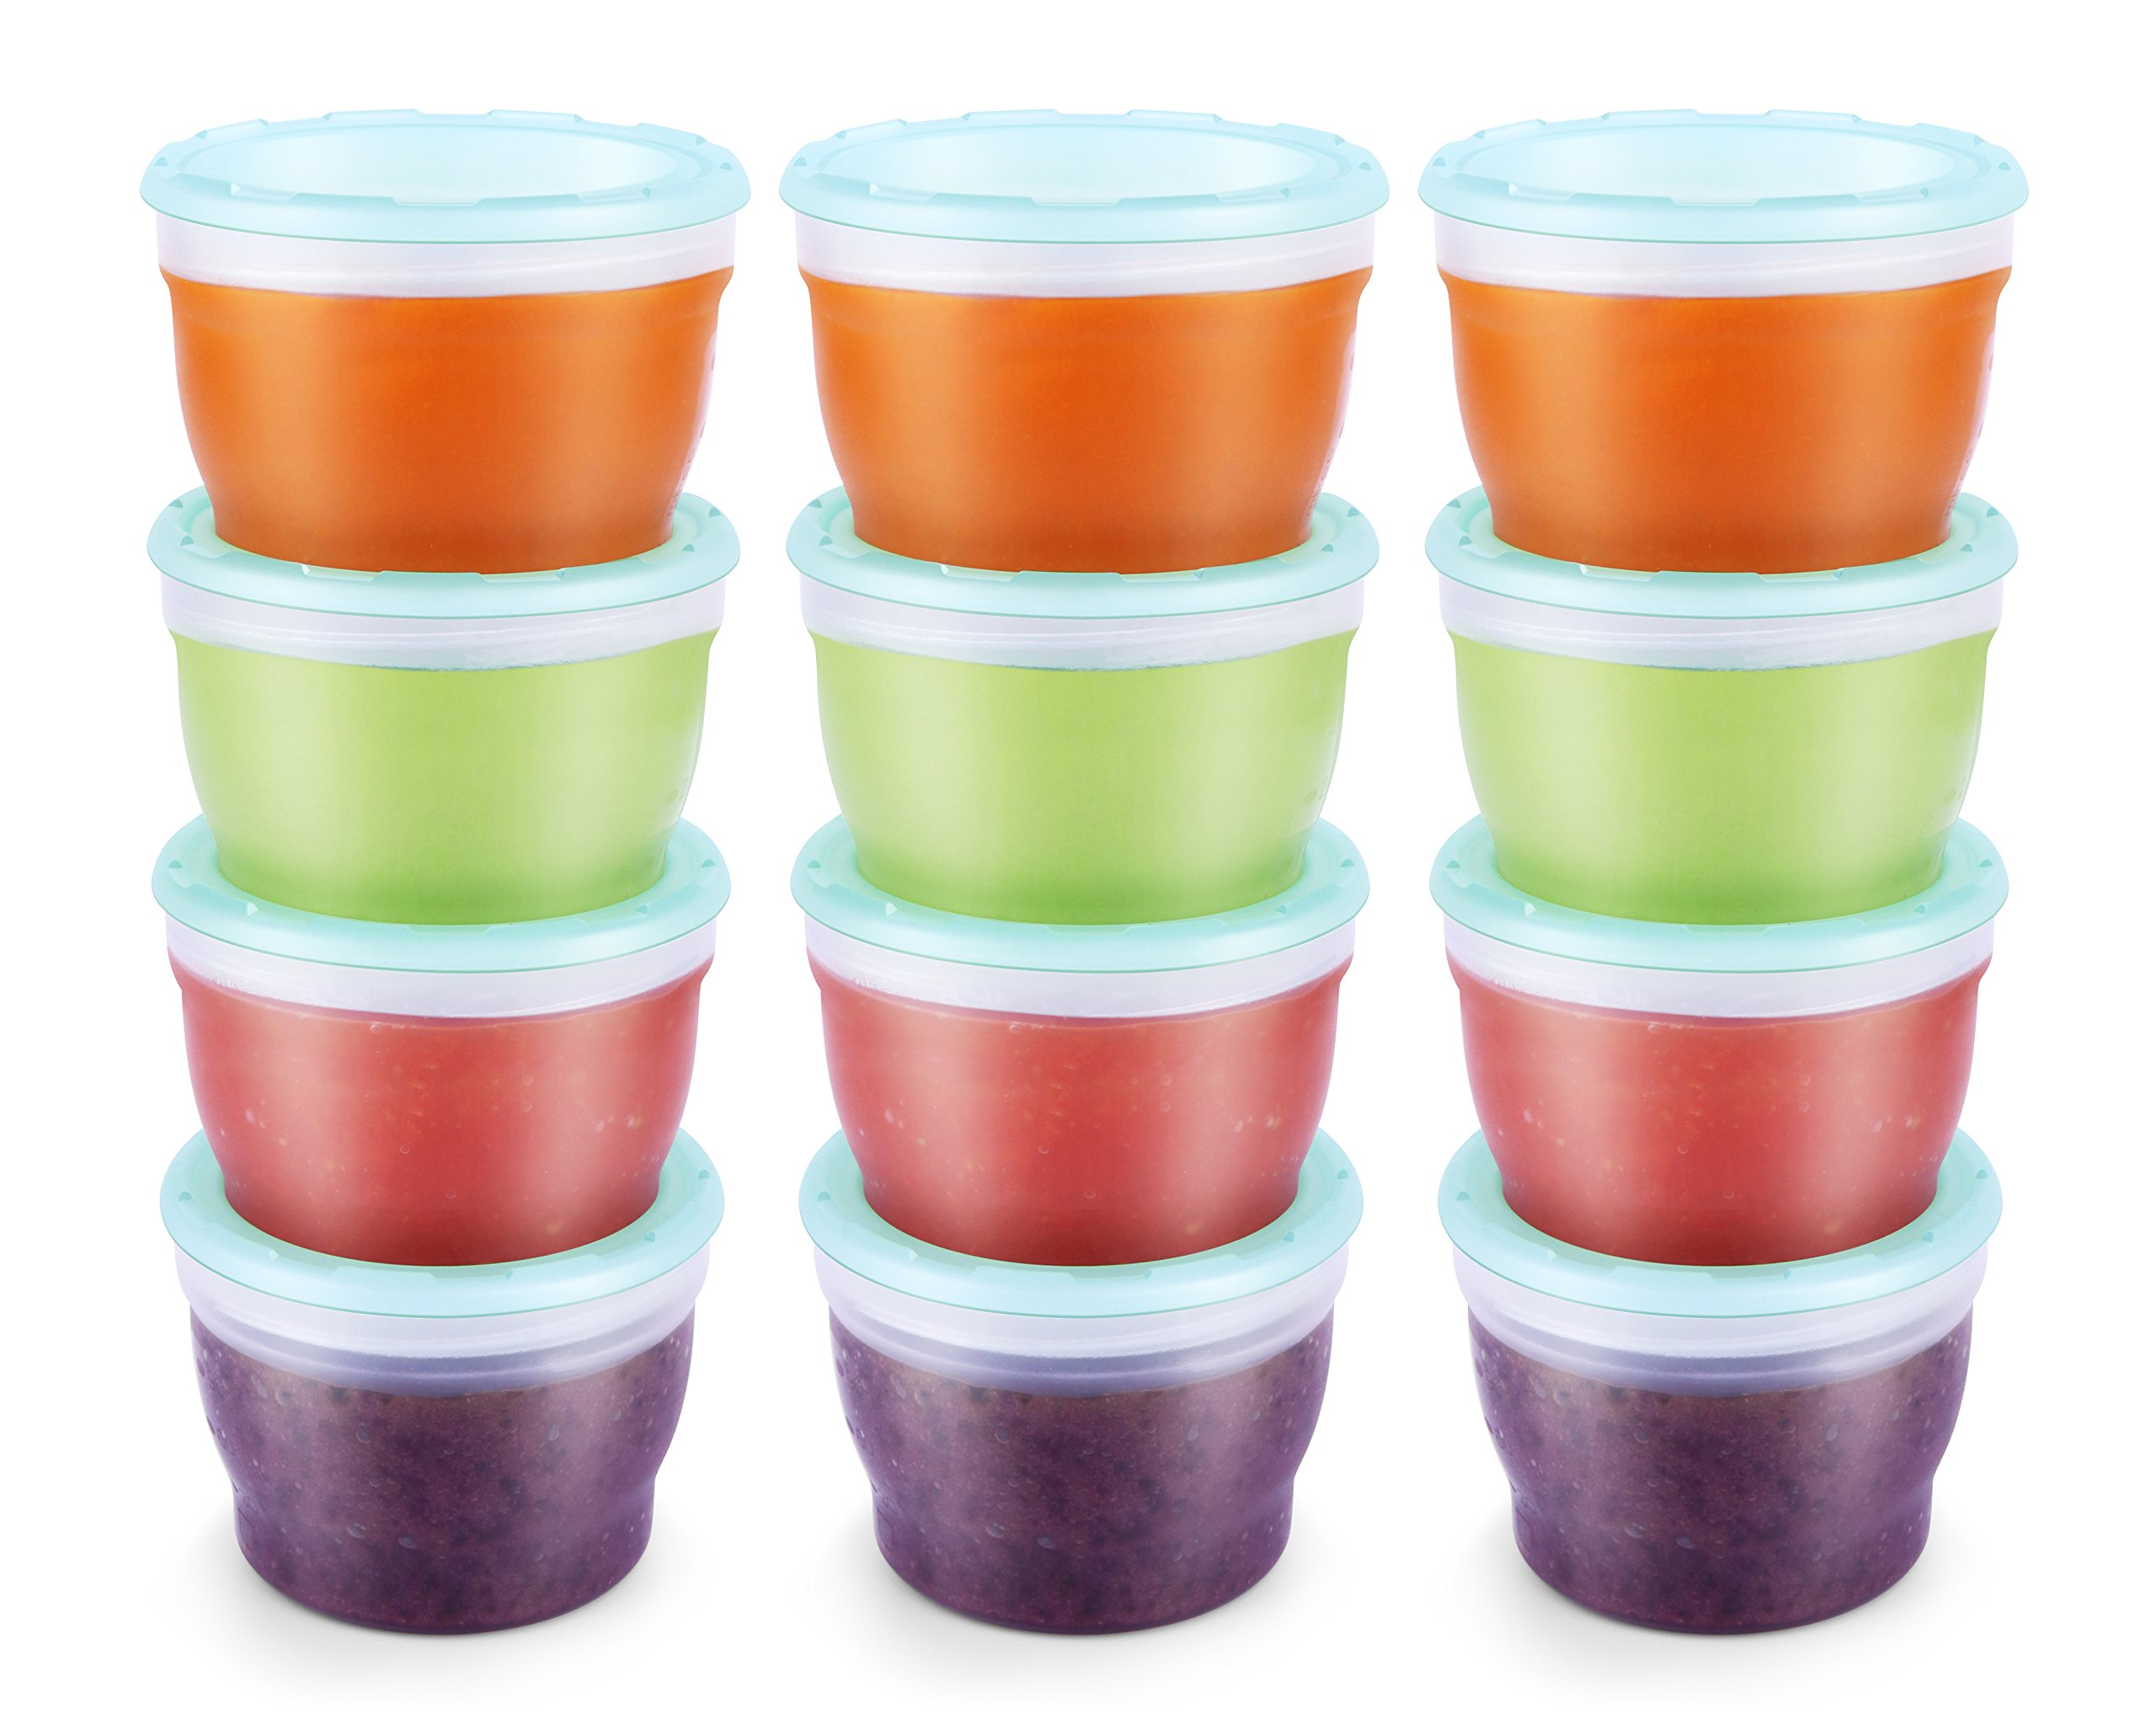 QOOC Baby Food Storage Freezer Containers, BPA-Free Airtight Plastic Set of 12-4 Ounce, Mint Blue by minne